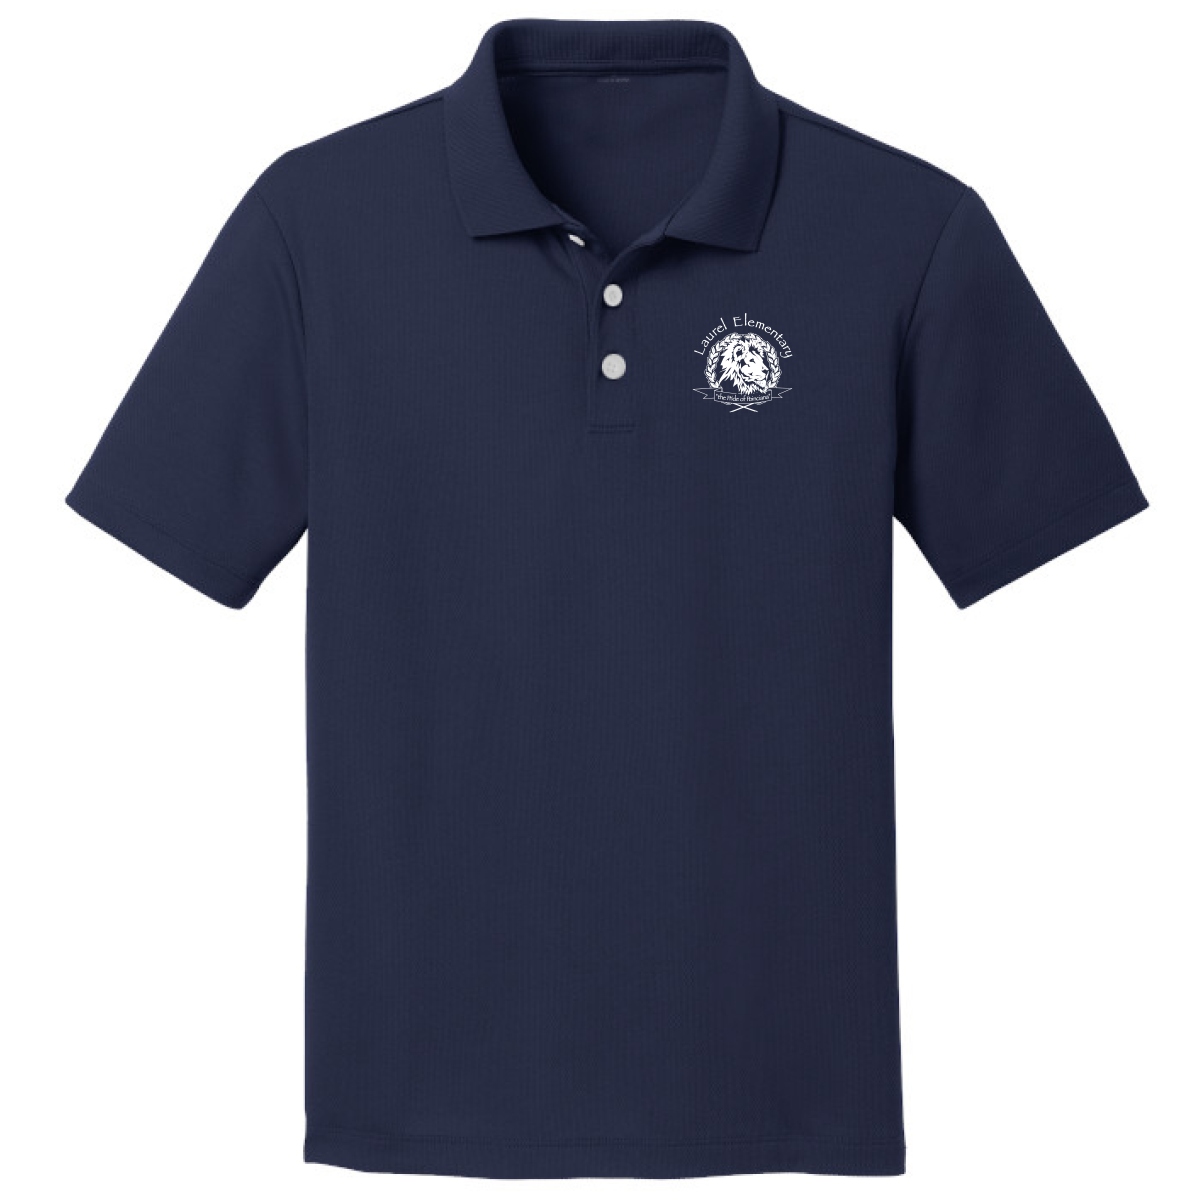 Laurel Elementary Jerzees SpotShield™ Jersey Polo - (Youth & Adult Sizes) - Navy